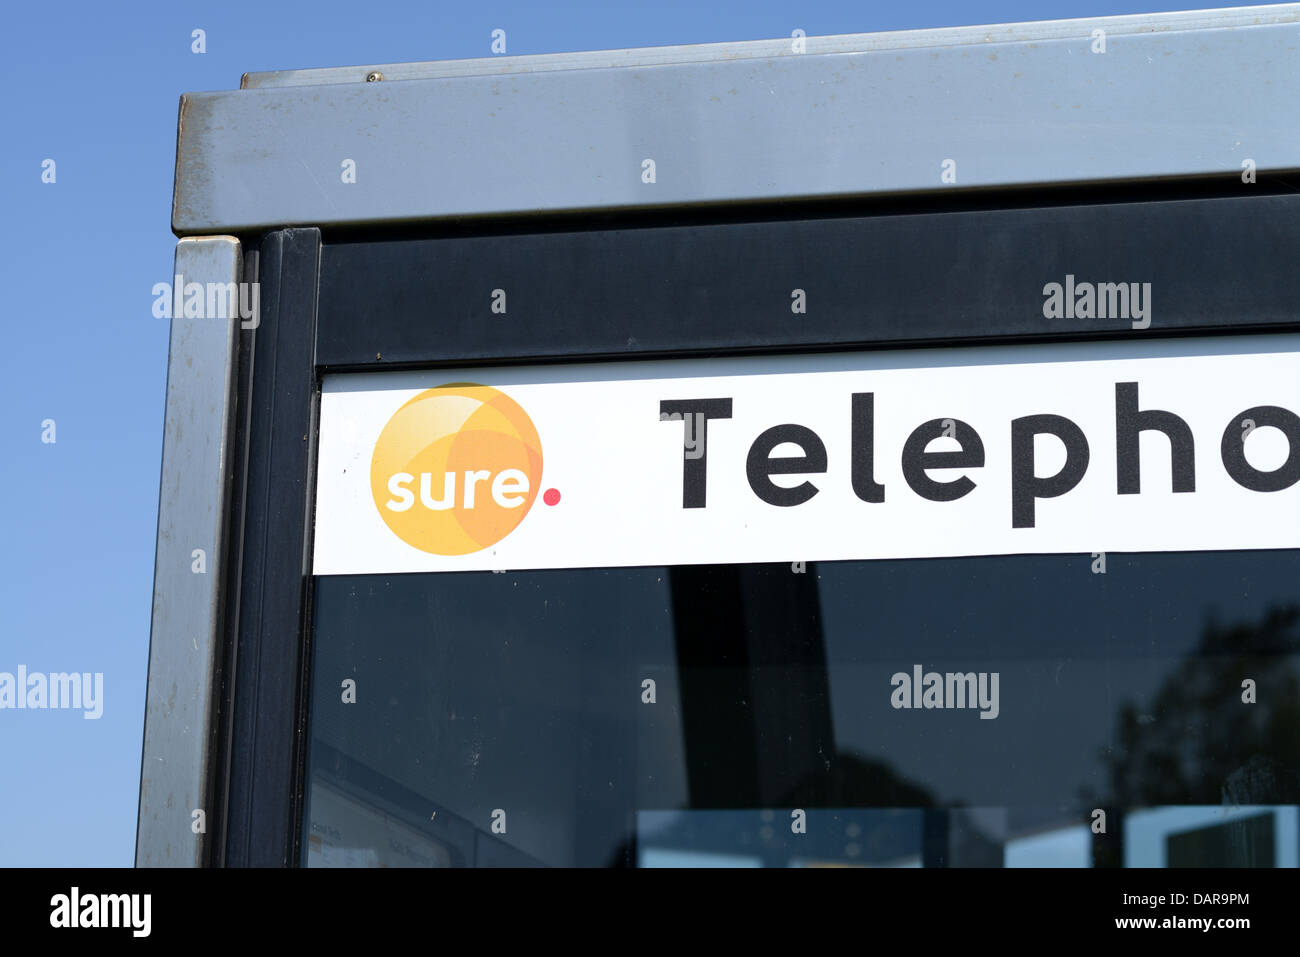 Sure telephone box - Stock Image